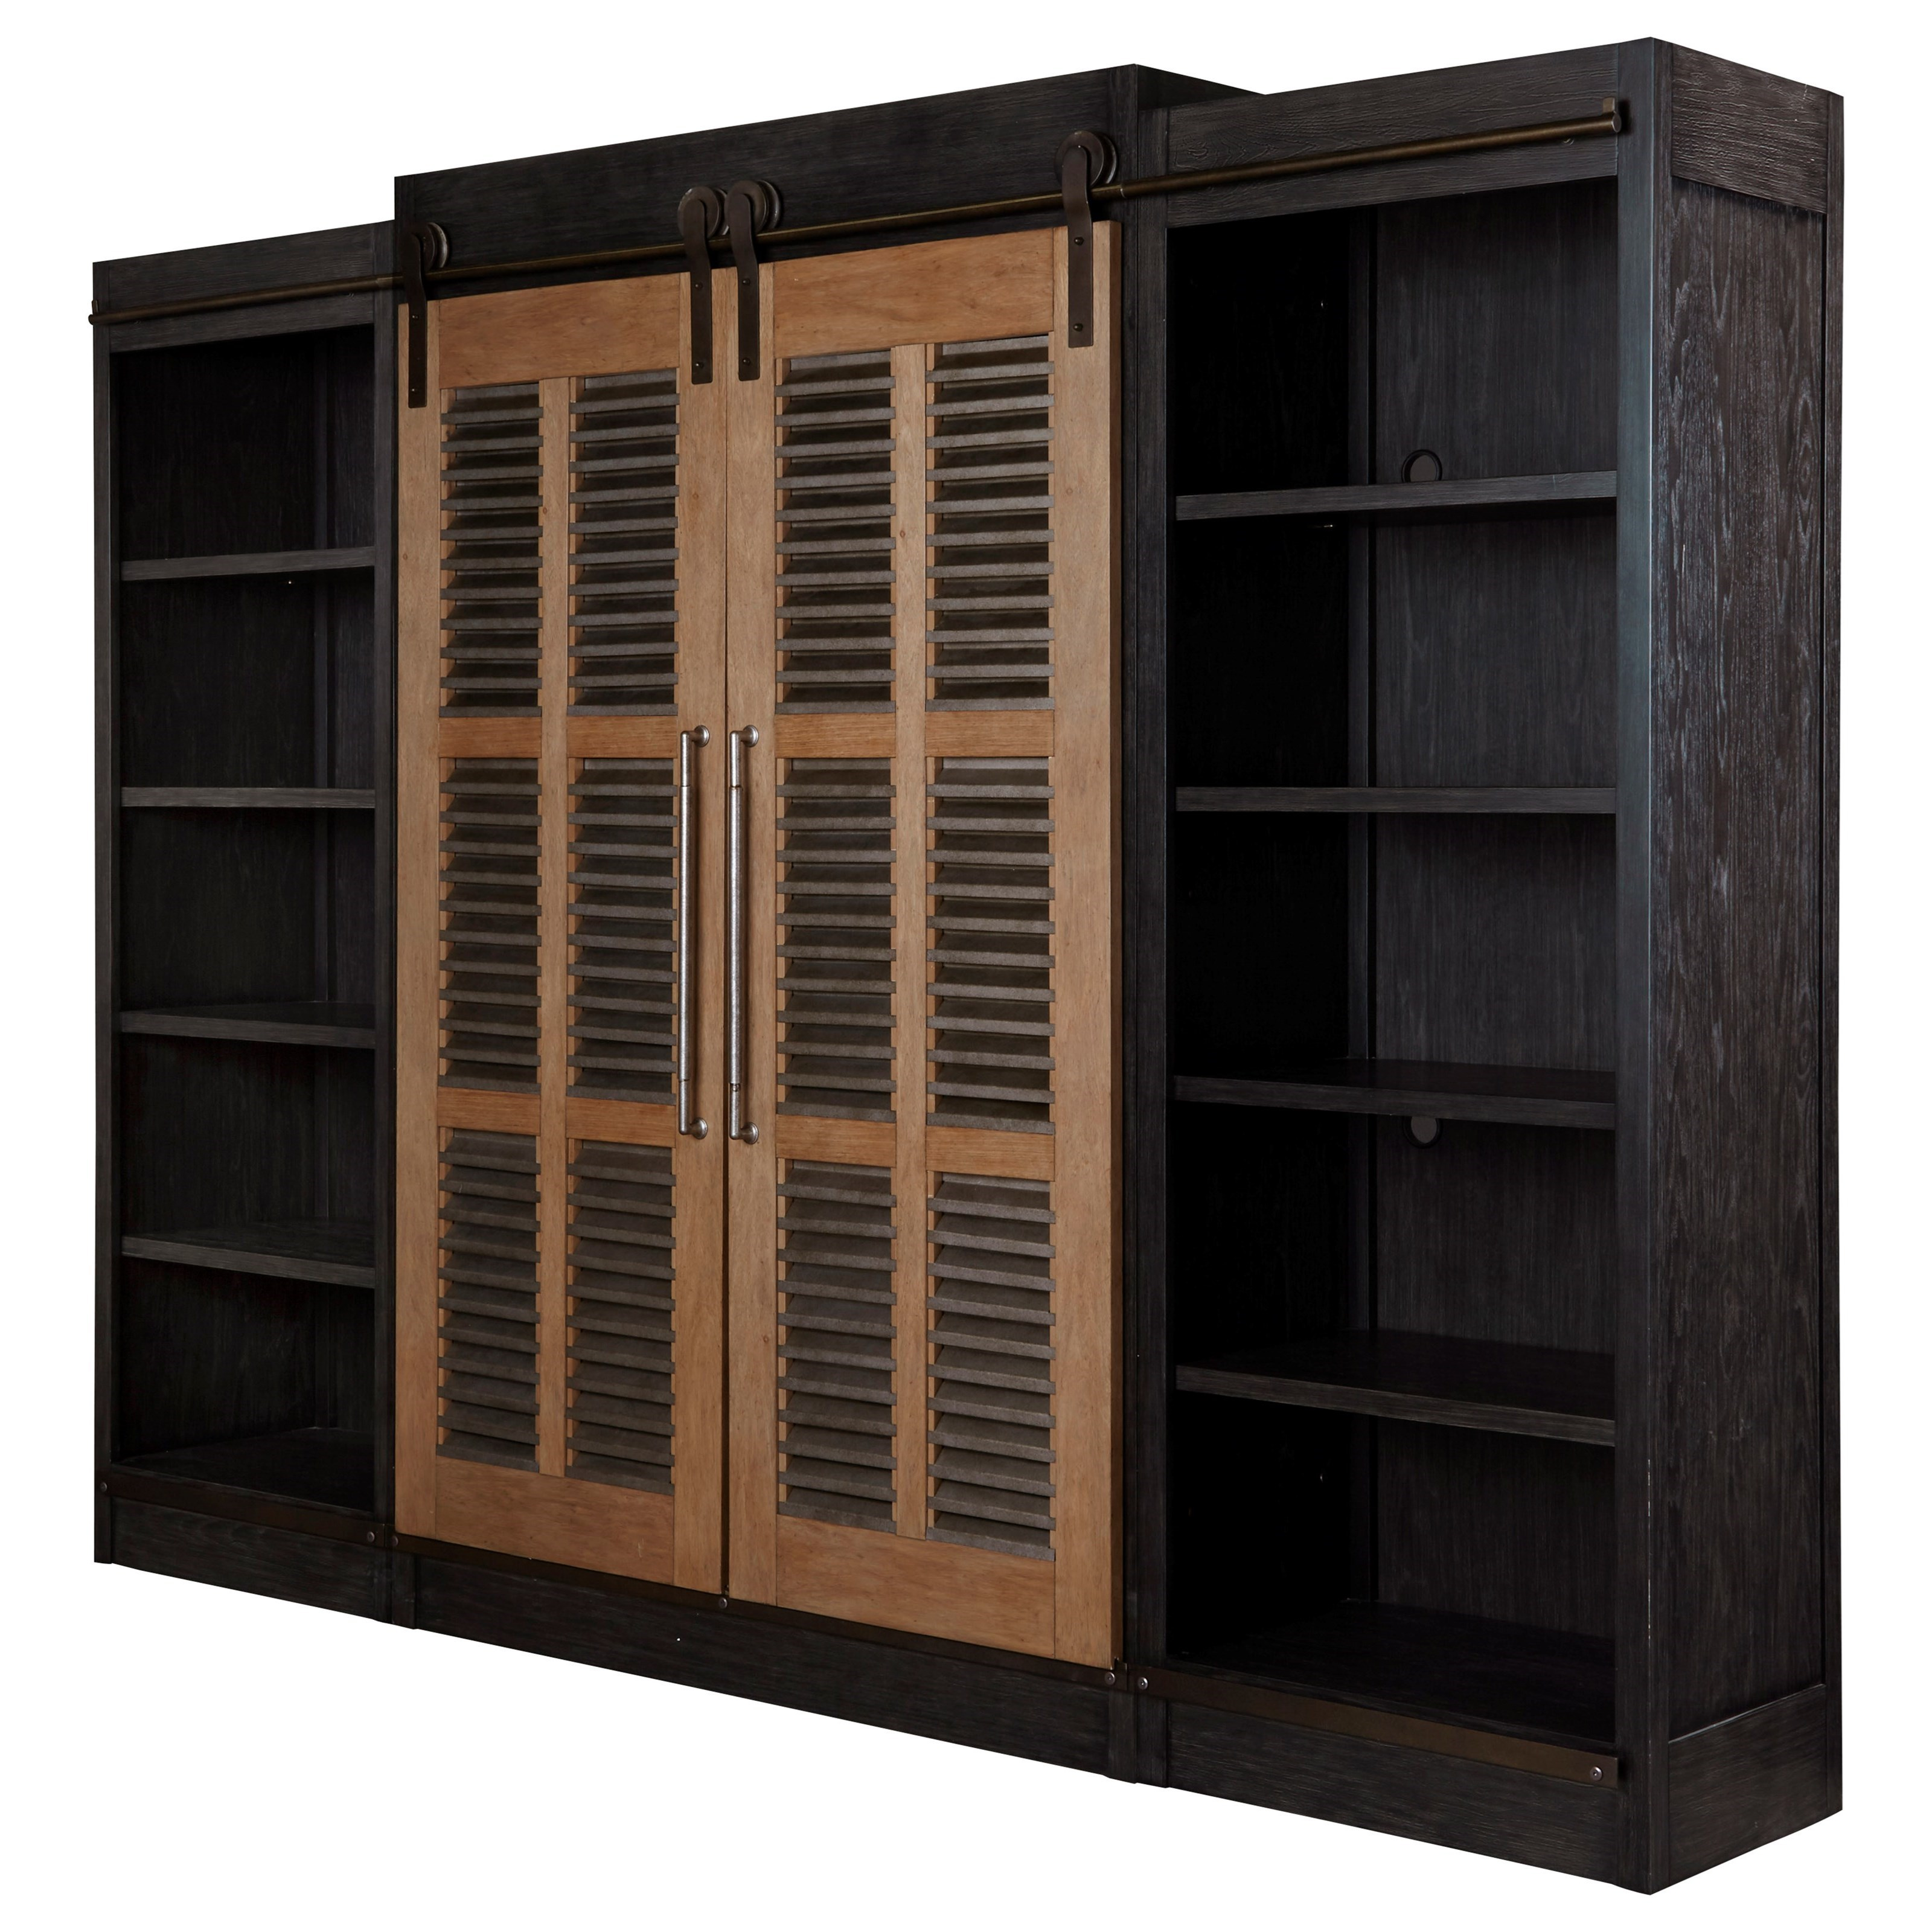 Farmhouse Sliding Door Console Cabinet: Universal Curated Darcy Entertainment Cabinet With Sliding